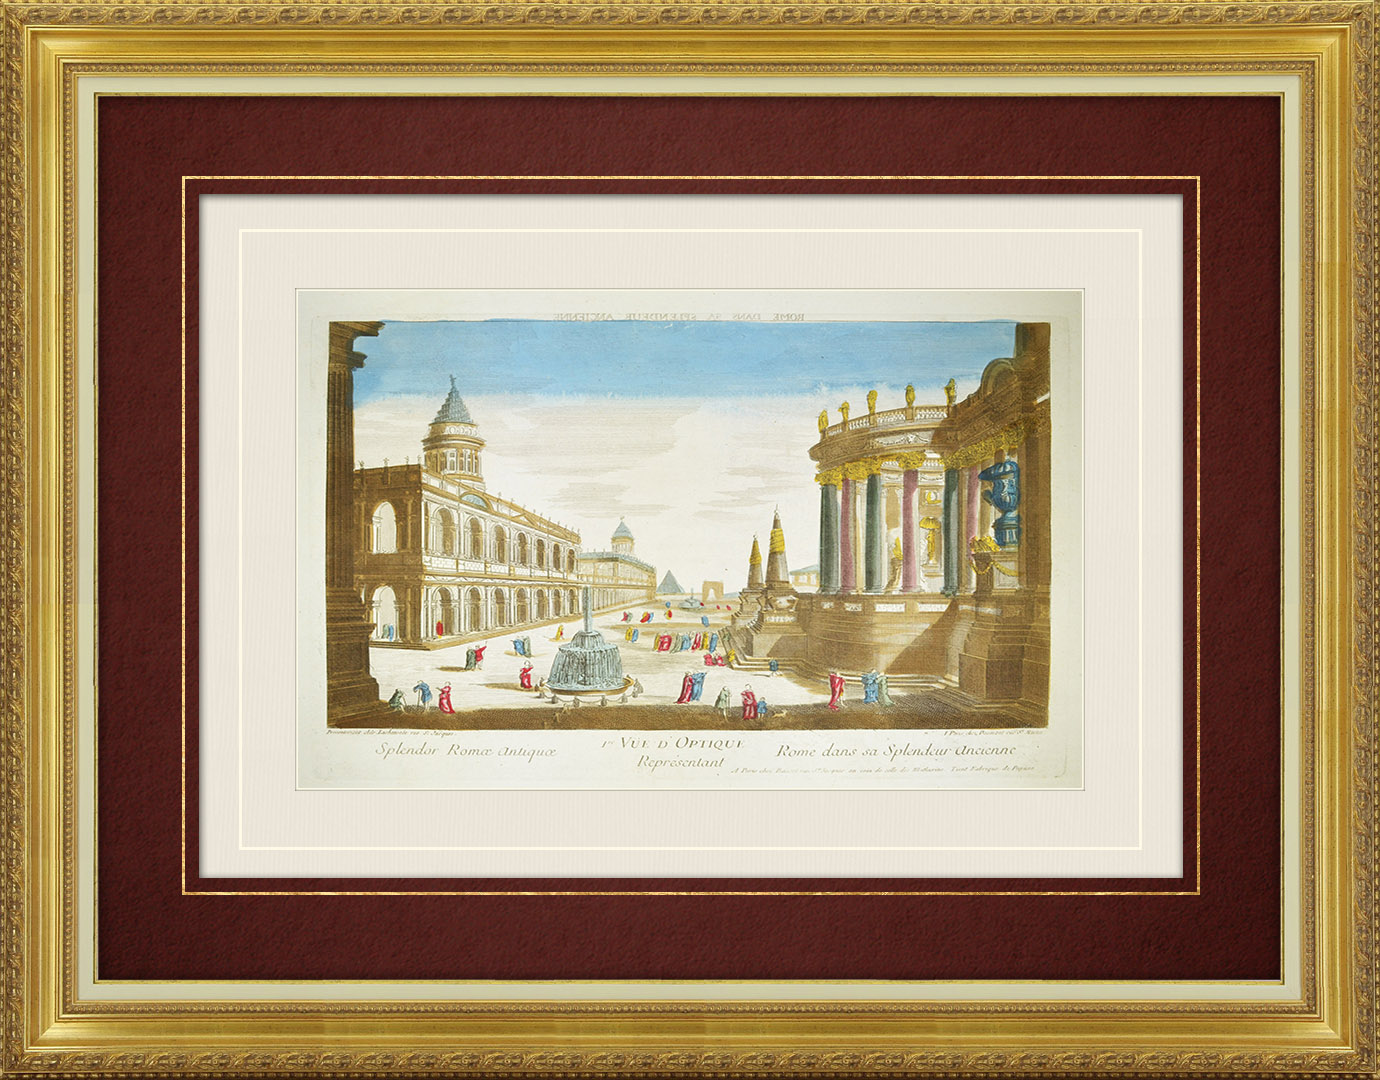 18th Century optical view in original watercolors of ancient Rome (Italy)